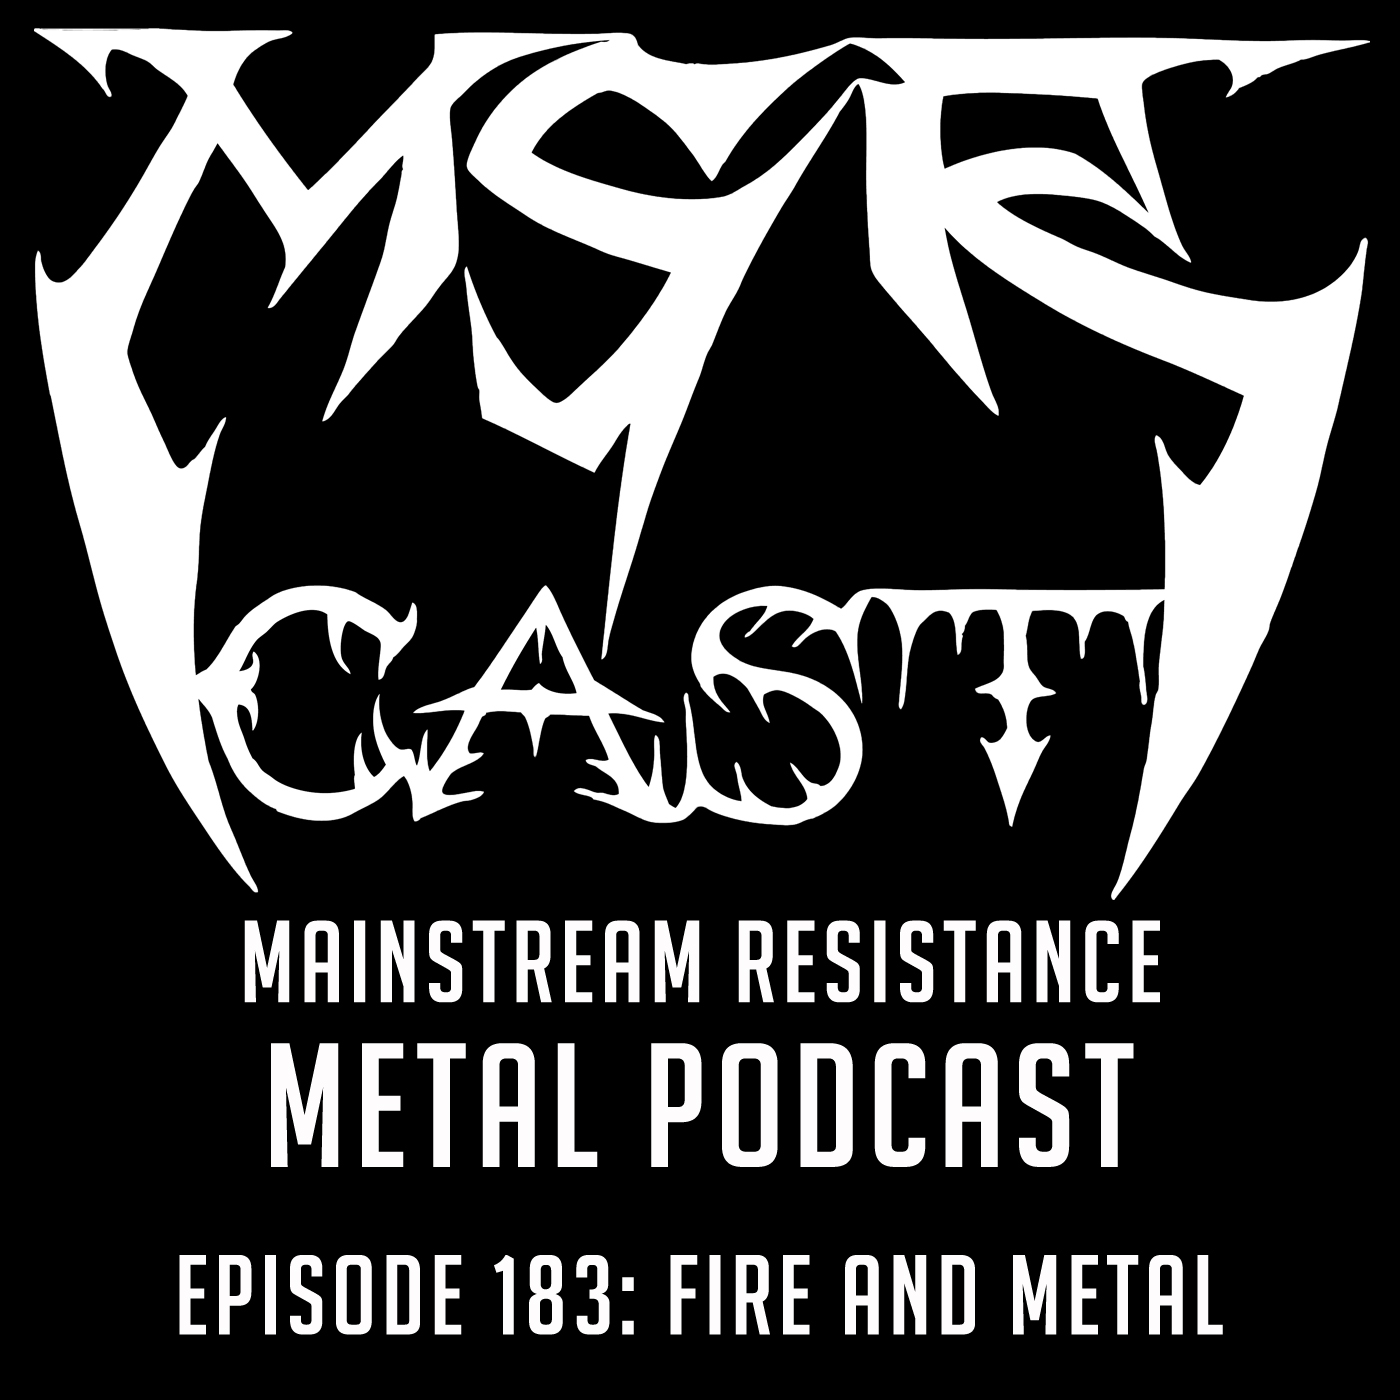 MSRcast 183: Fire And Metal